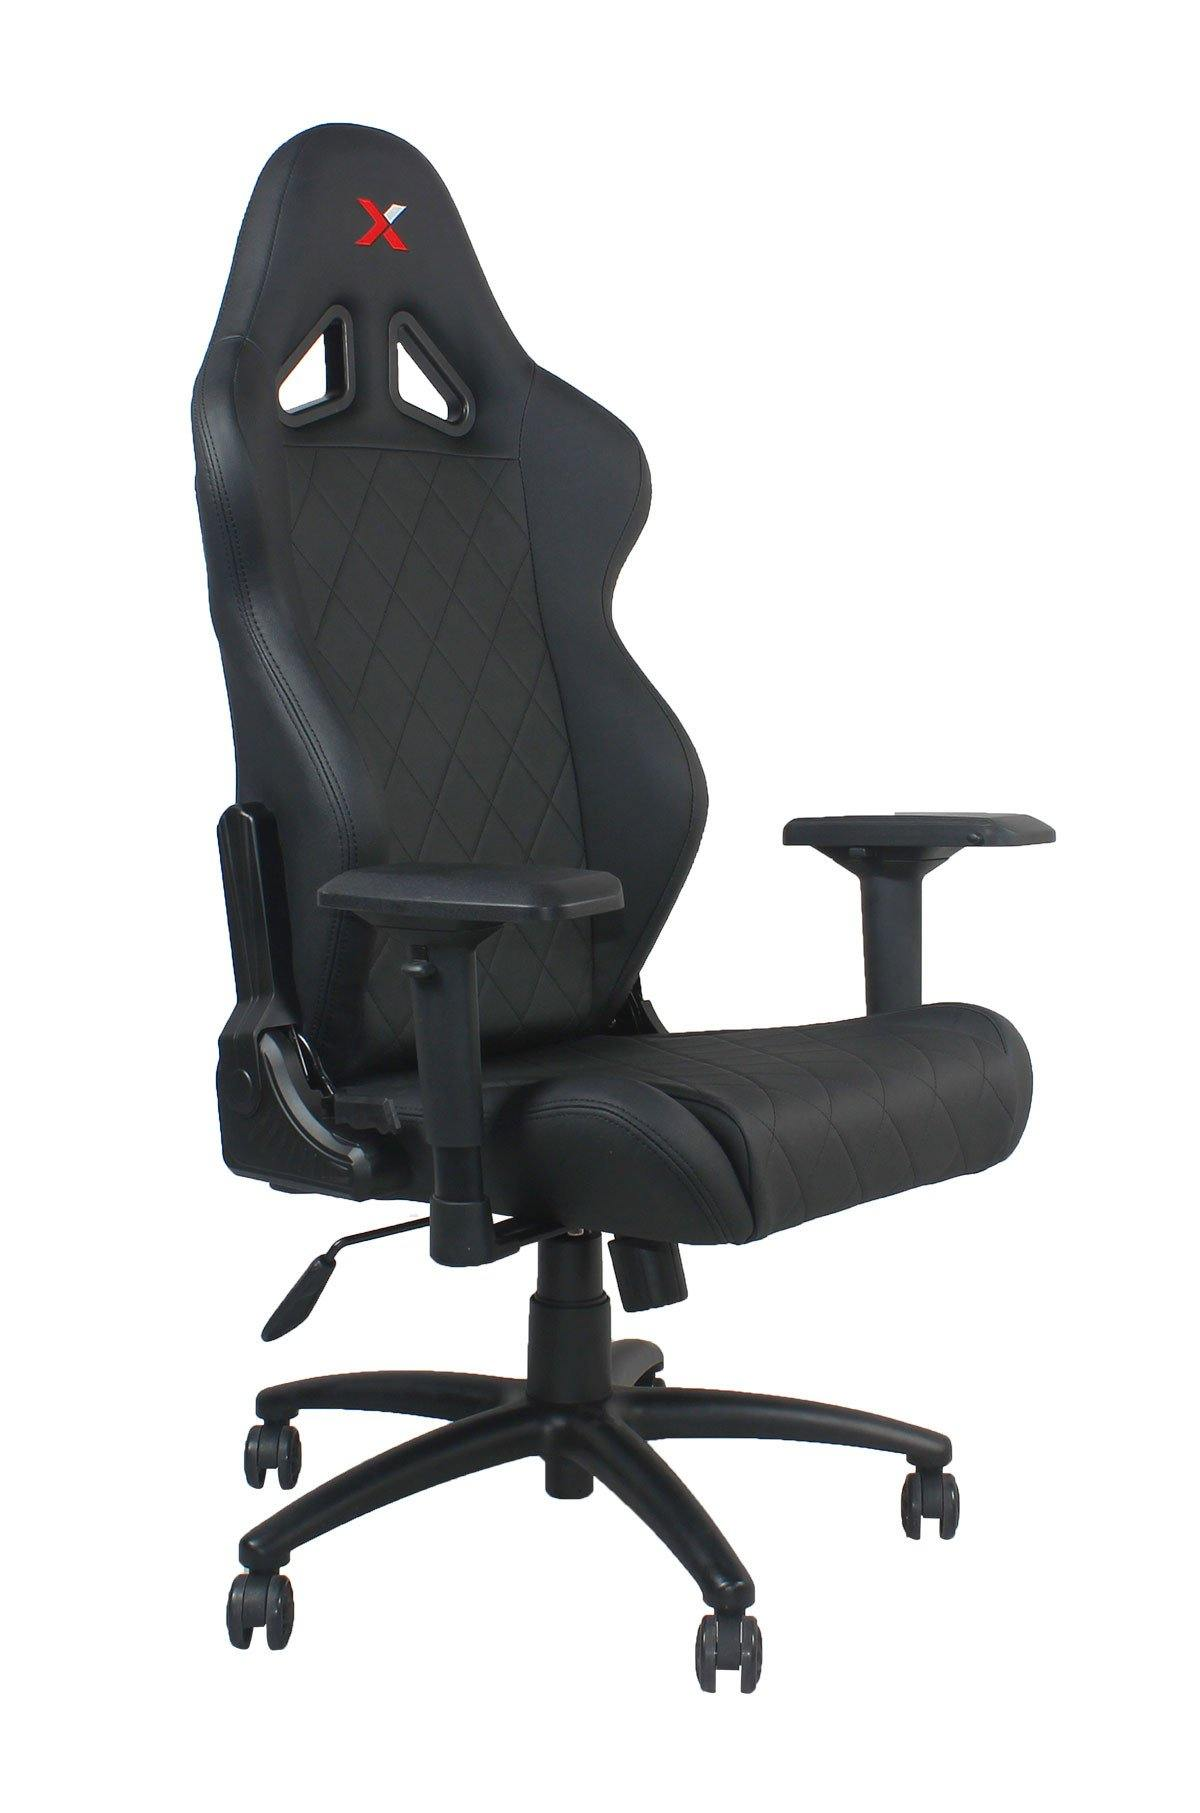 Ferrino Chair - Black on Black